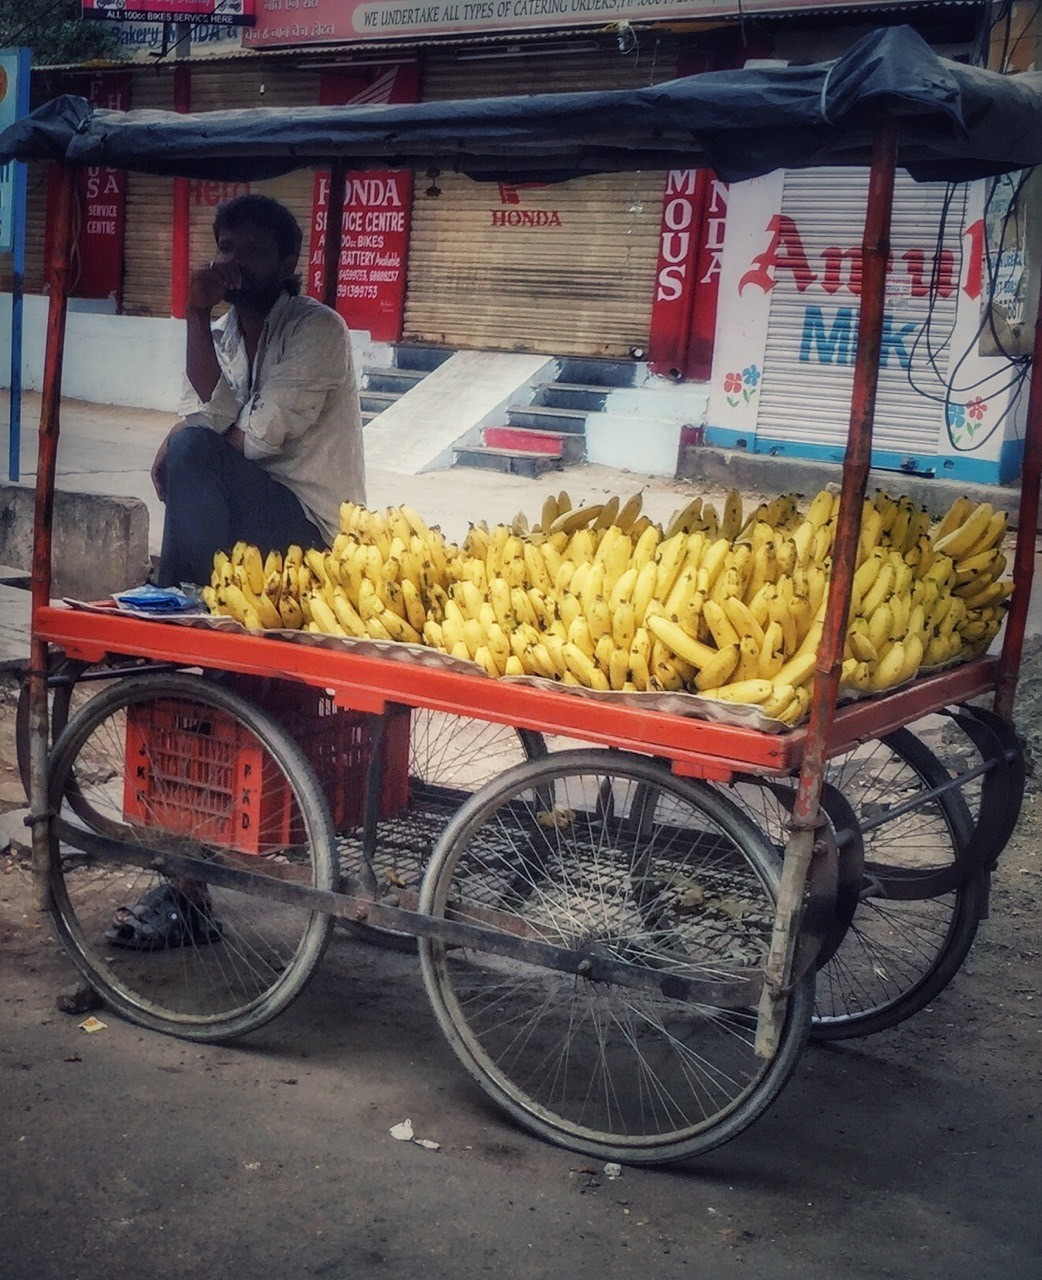 Banana about bananas #iphoneograohy #streetphotography #india